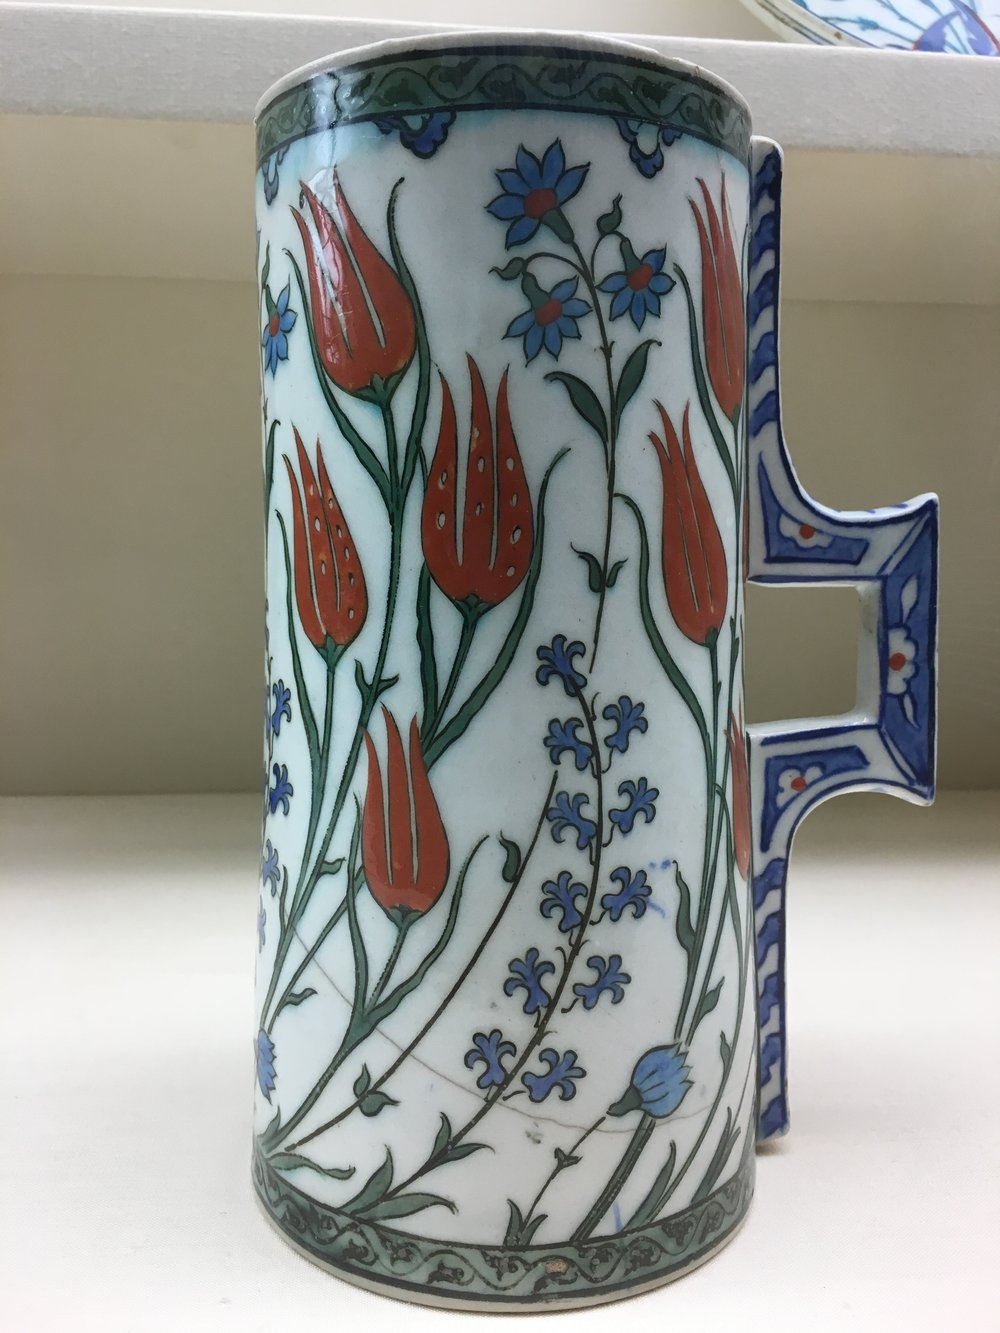 Red tulips on a ca. 1575 Iznik Turkish tankard from the Ottoman period, stonepaste, painted under the glaze. In the Museu Calouste Gulbenkian, Lisboa. (Photograph J. Cook)